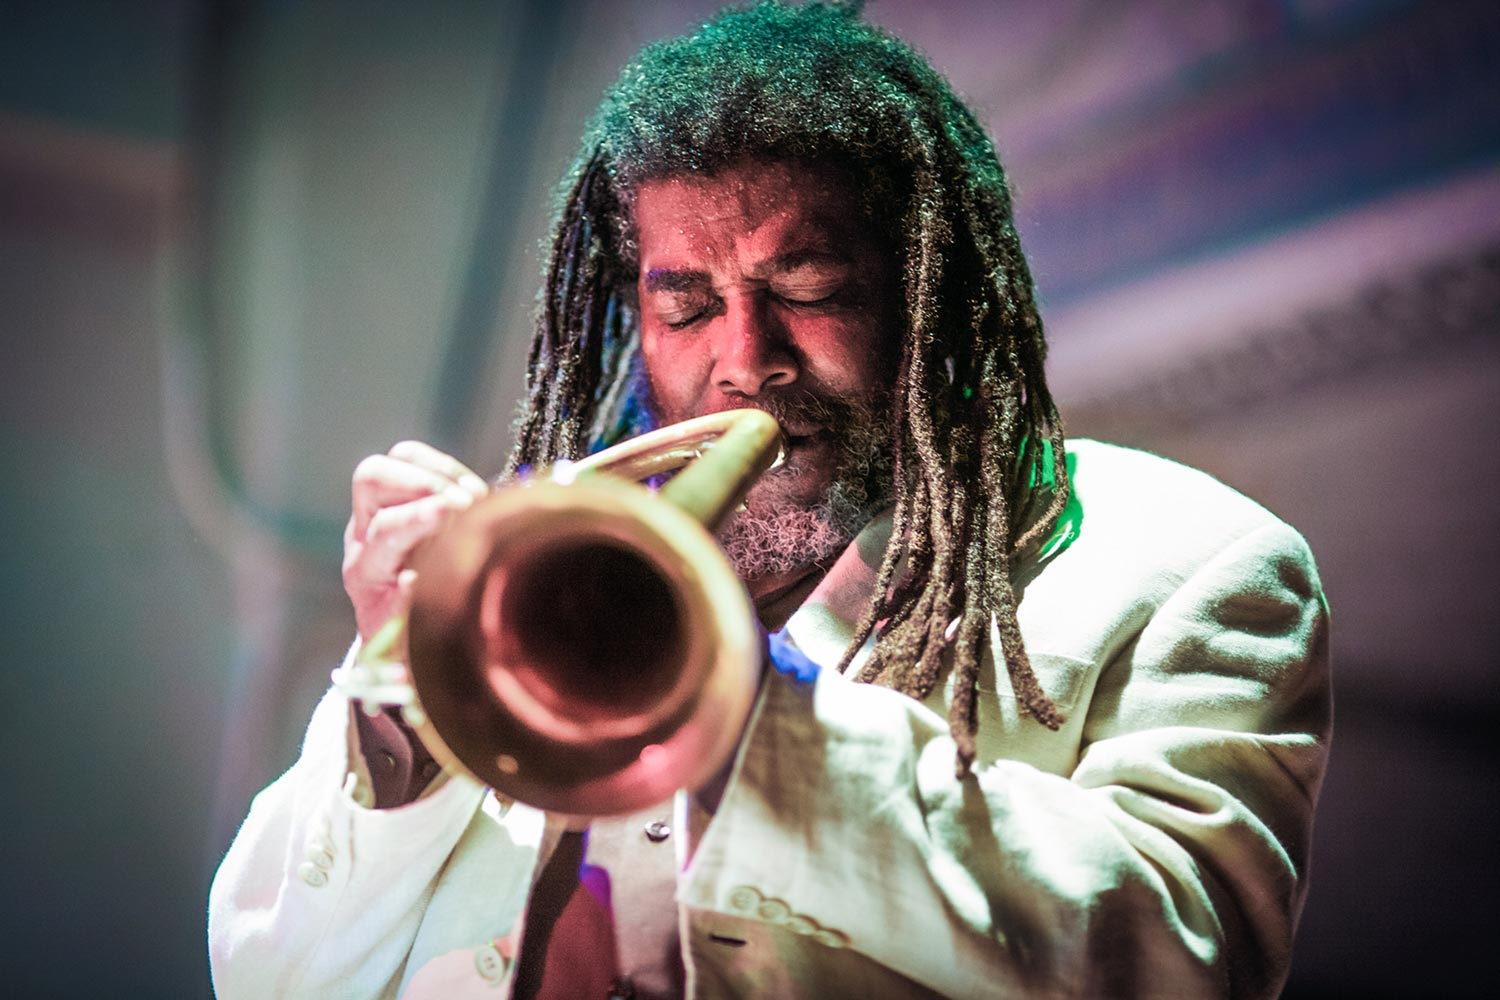 Composer and creative musician Wadada Leo Smith will present his visual artwork and give a concert with the Golden Quintet. (Photo by Michael Jackson).